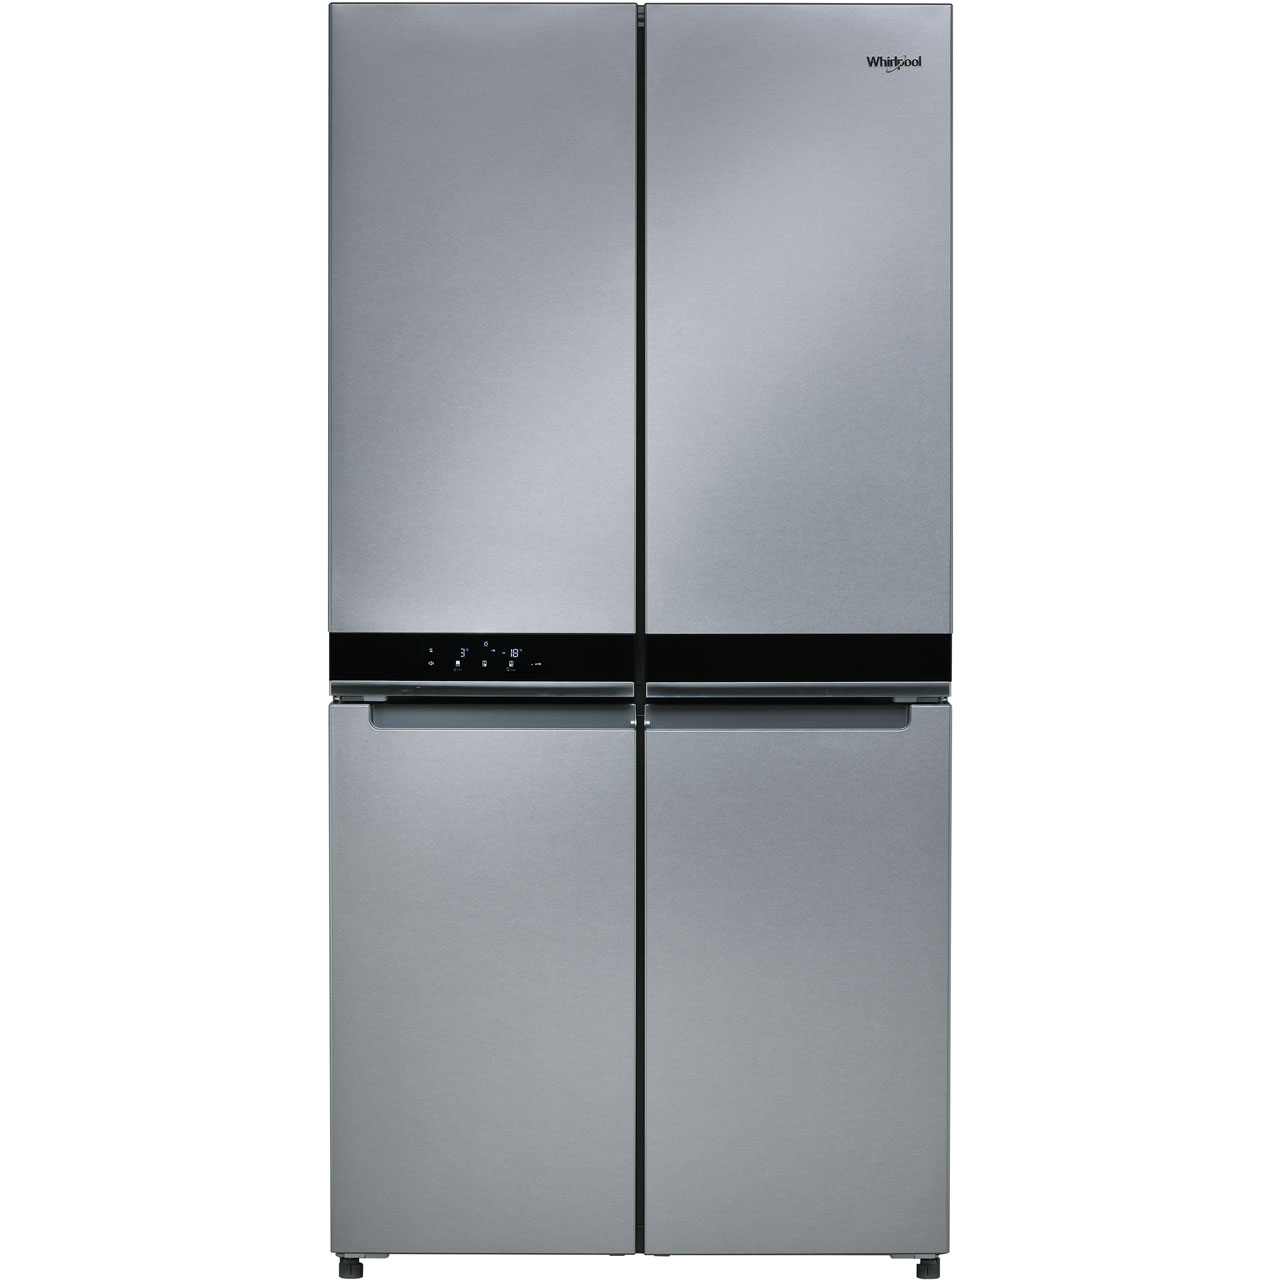 whirlpool w collection wq9b1luk american fridge freezer review